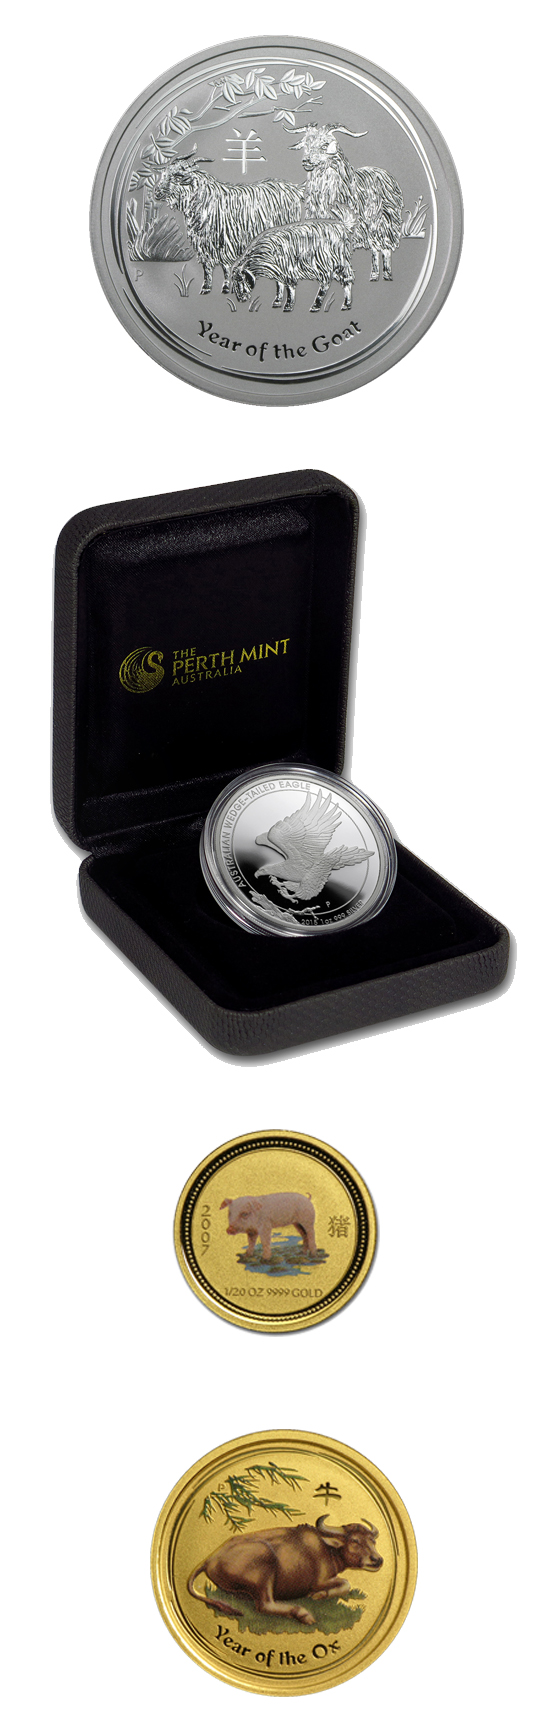 ALL ITEMS REDUCED -- Perth Mint Gold and Silver Items!